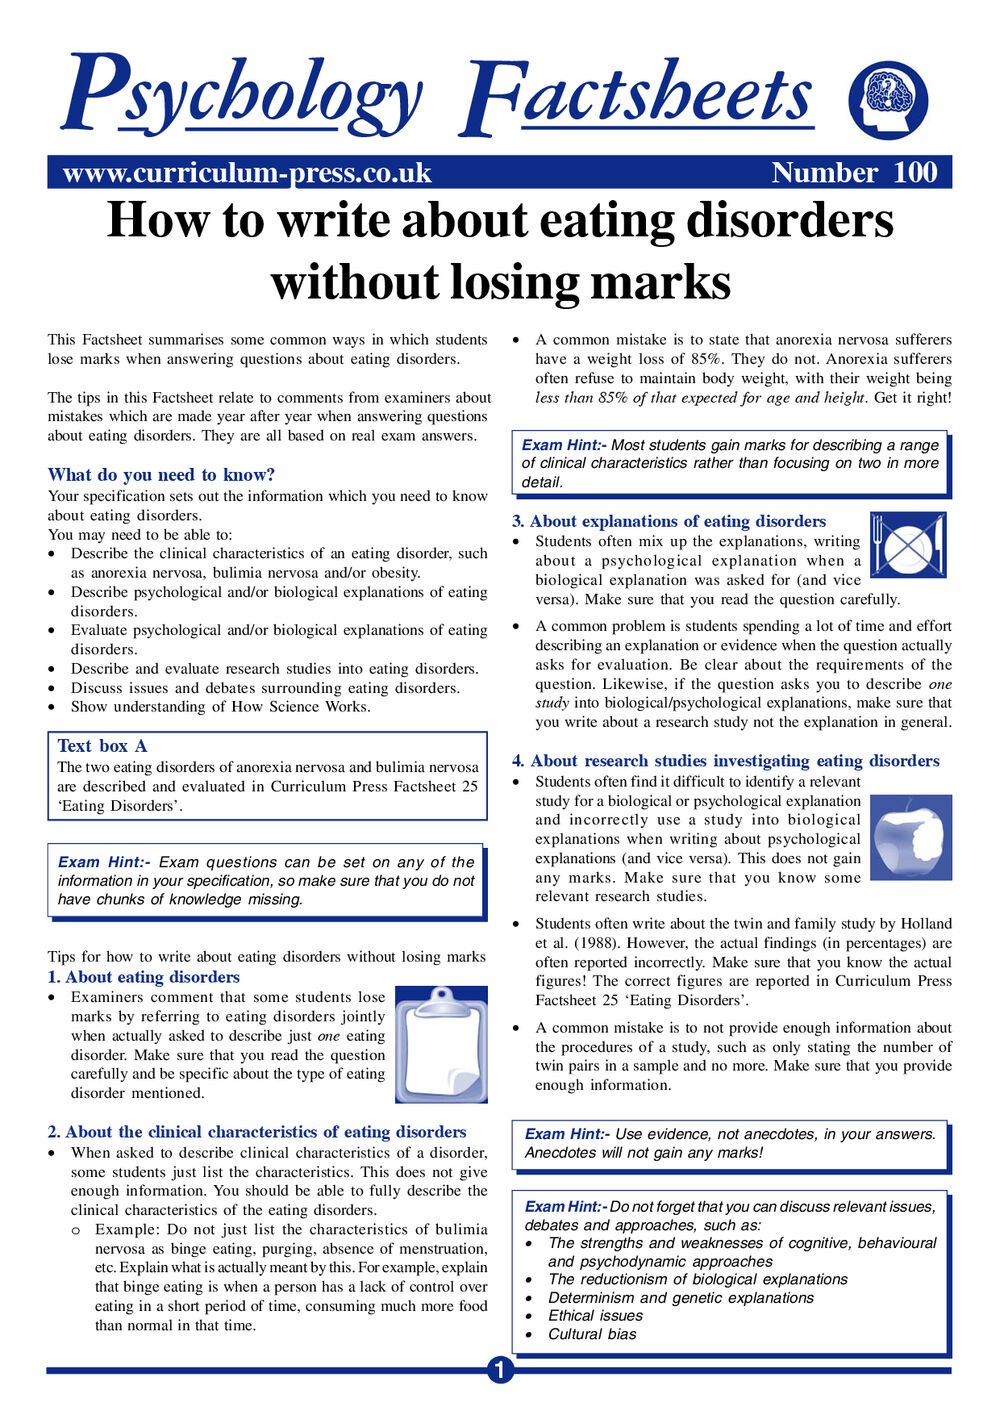 Curriculum Press - How to Write About Eating Disorders